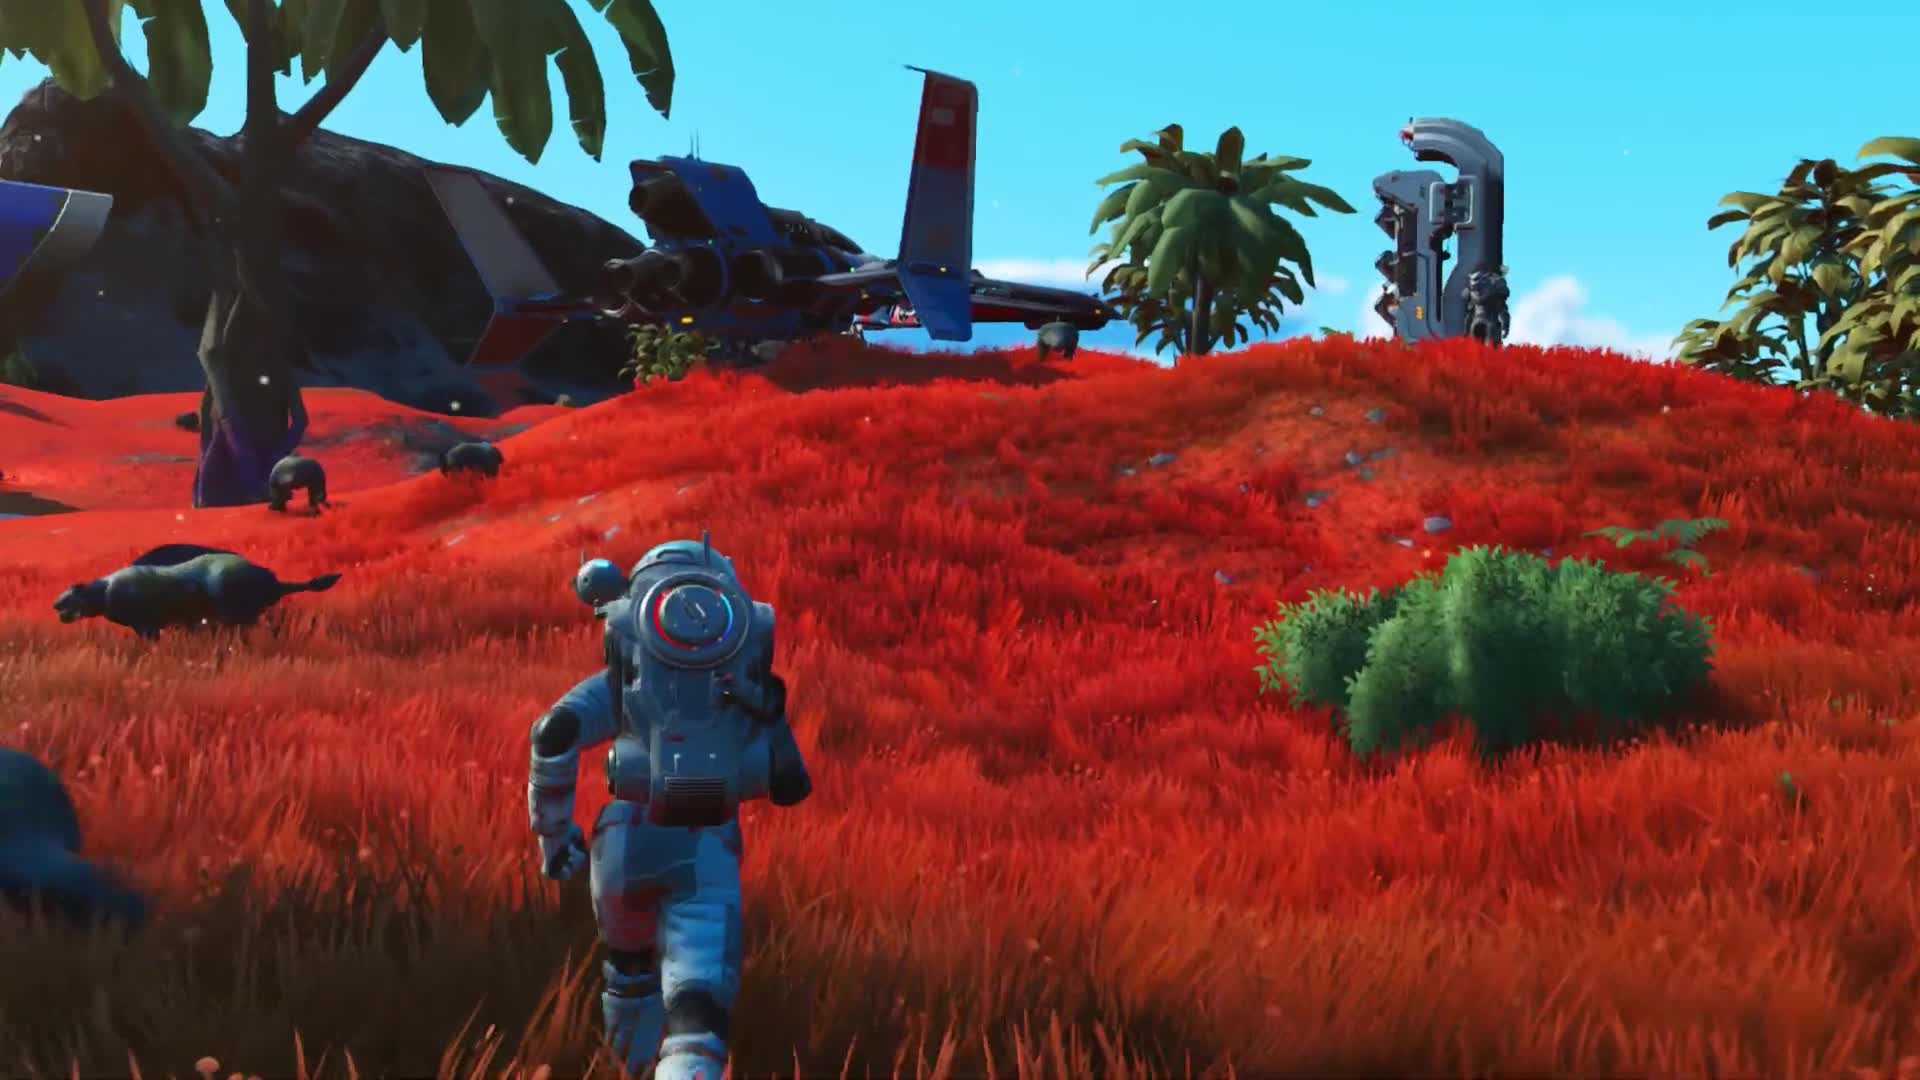 Trailer, Dlc, Simulation, No Man's Sky, Hello Games, 505 Games, No Man's Sky: BEYOND